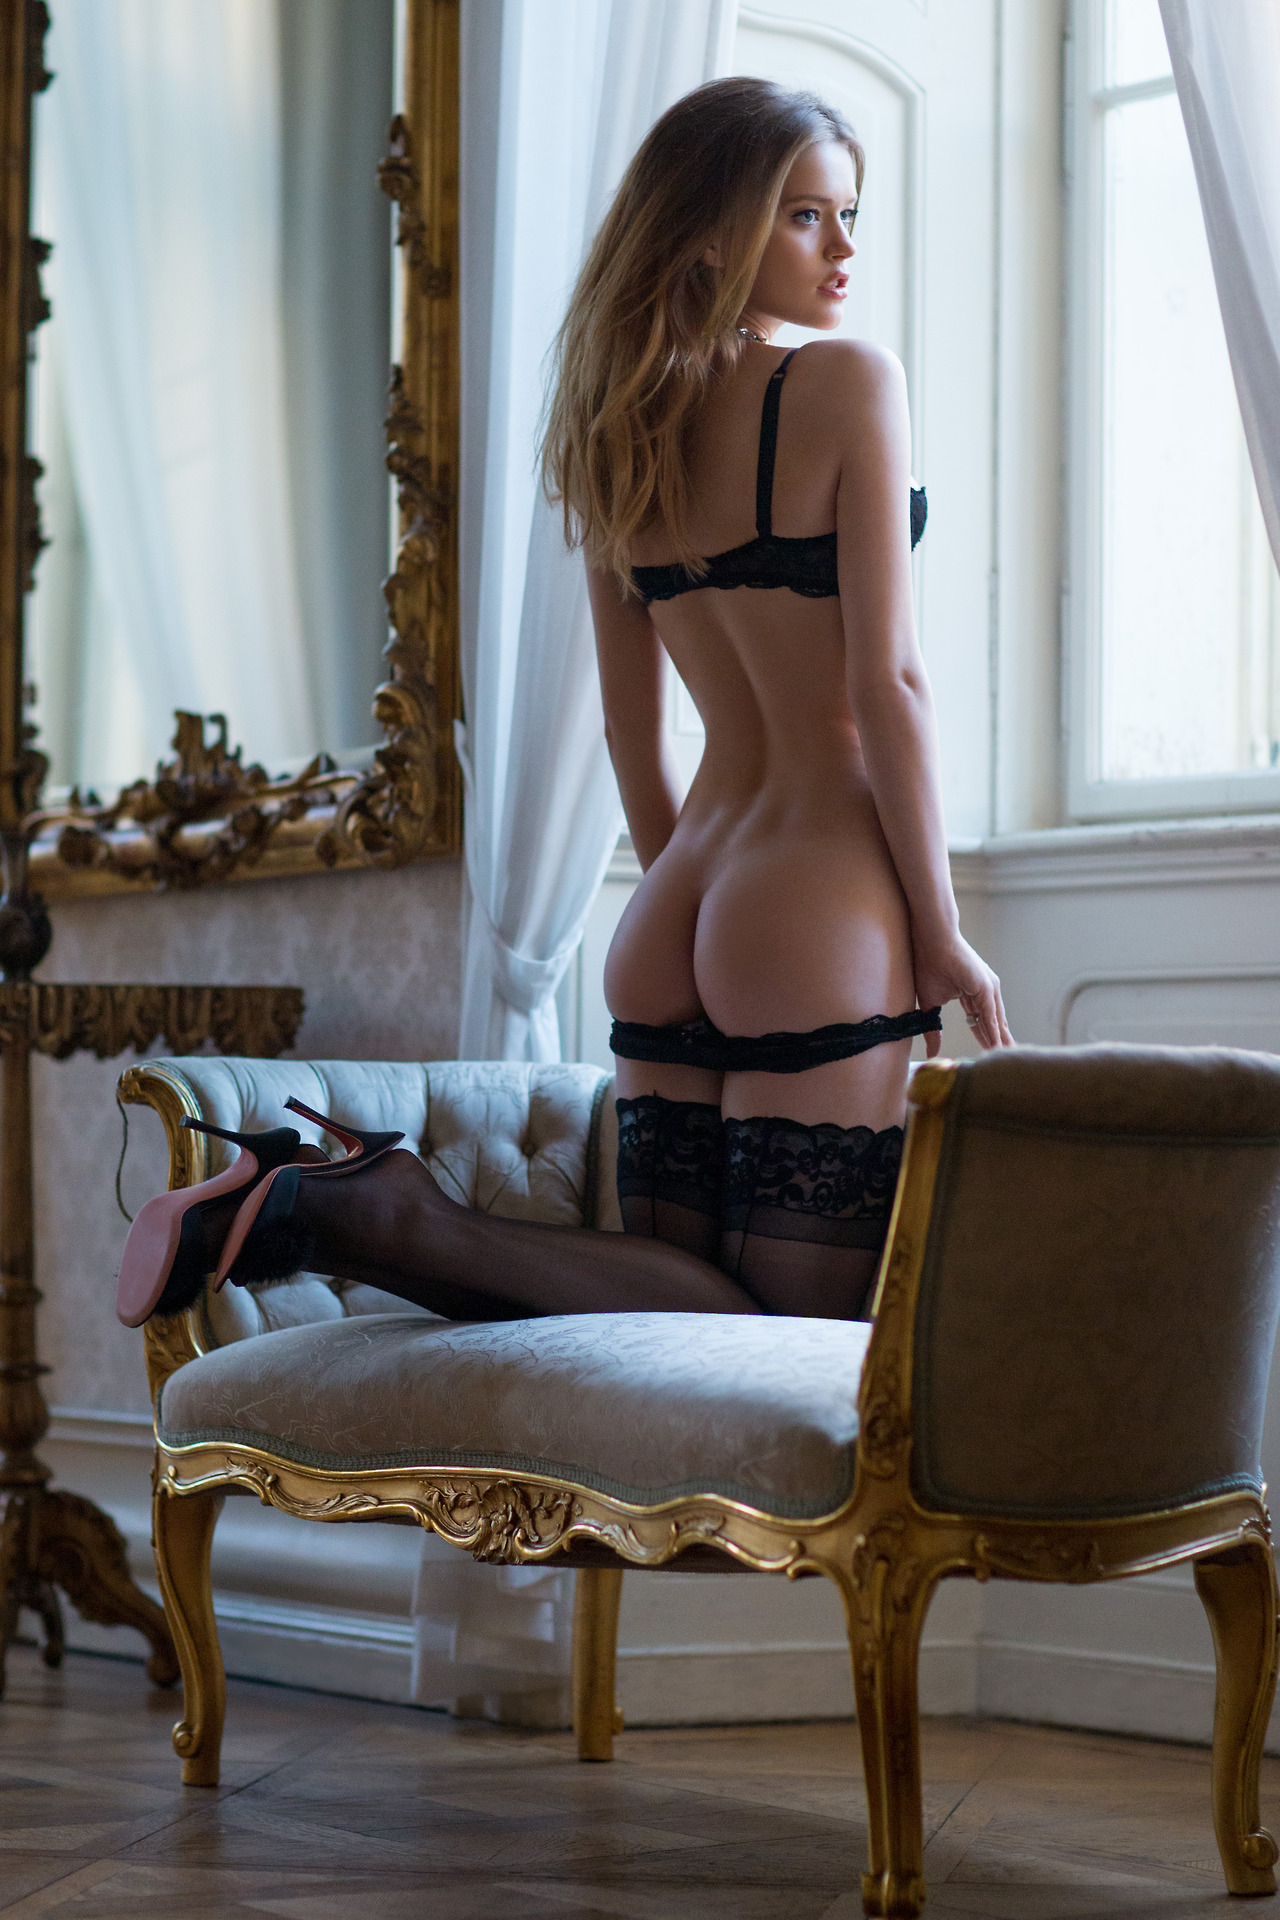 Pictorial: Lingerie RedBust